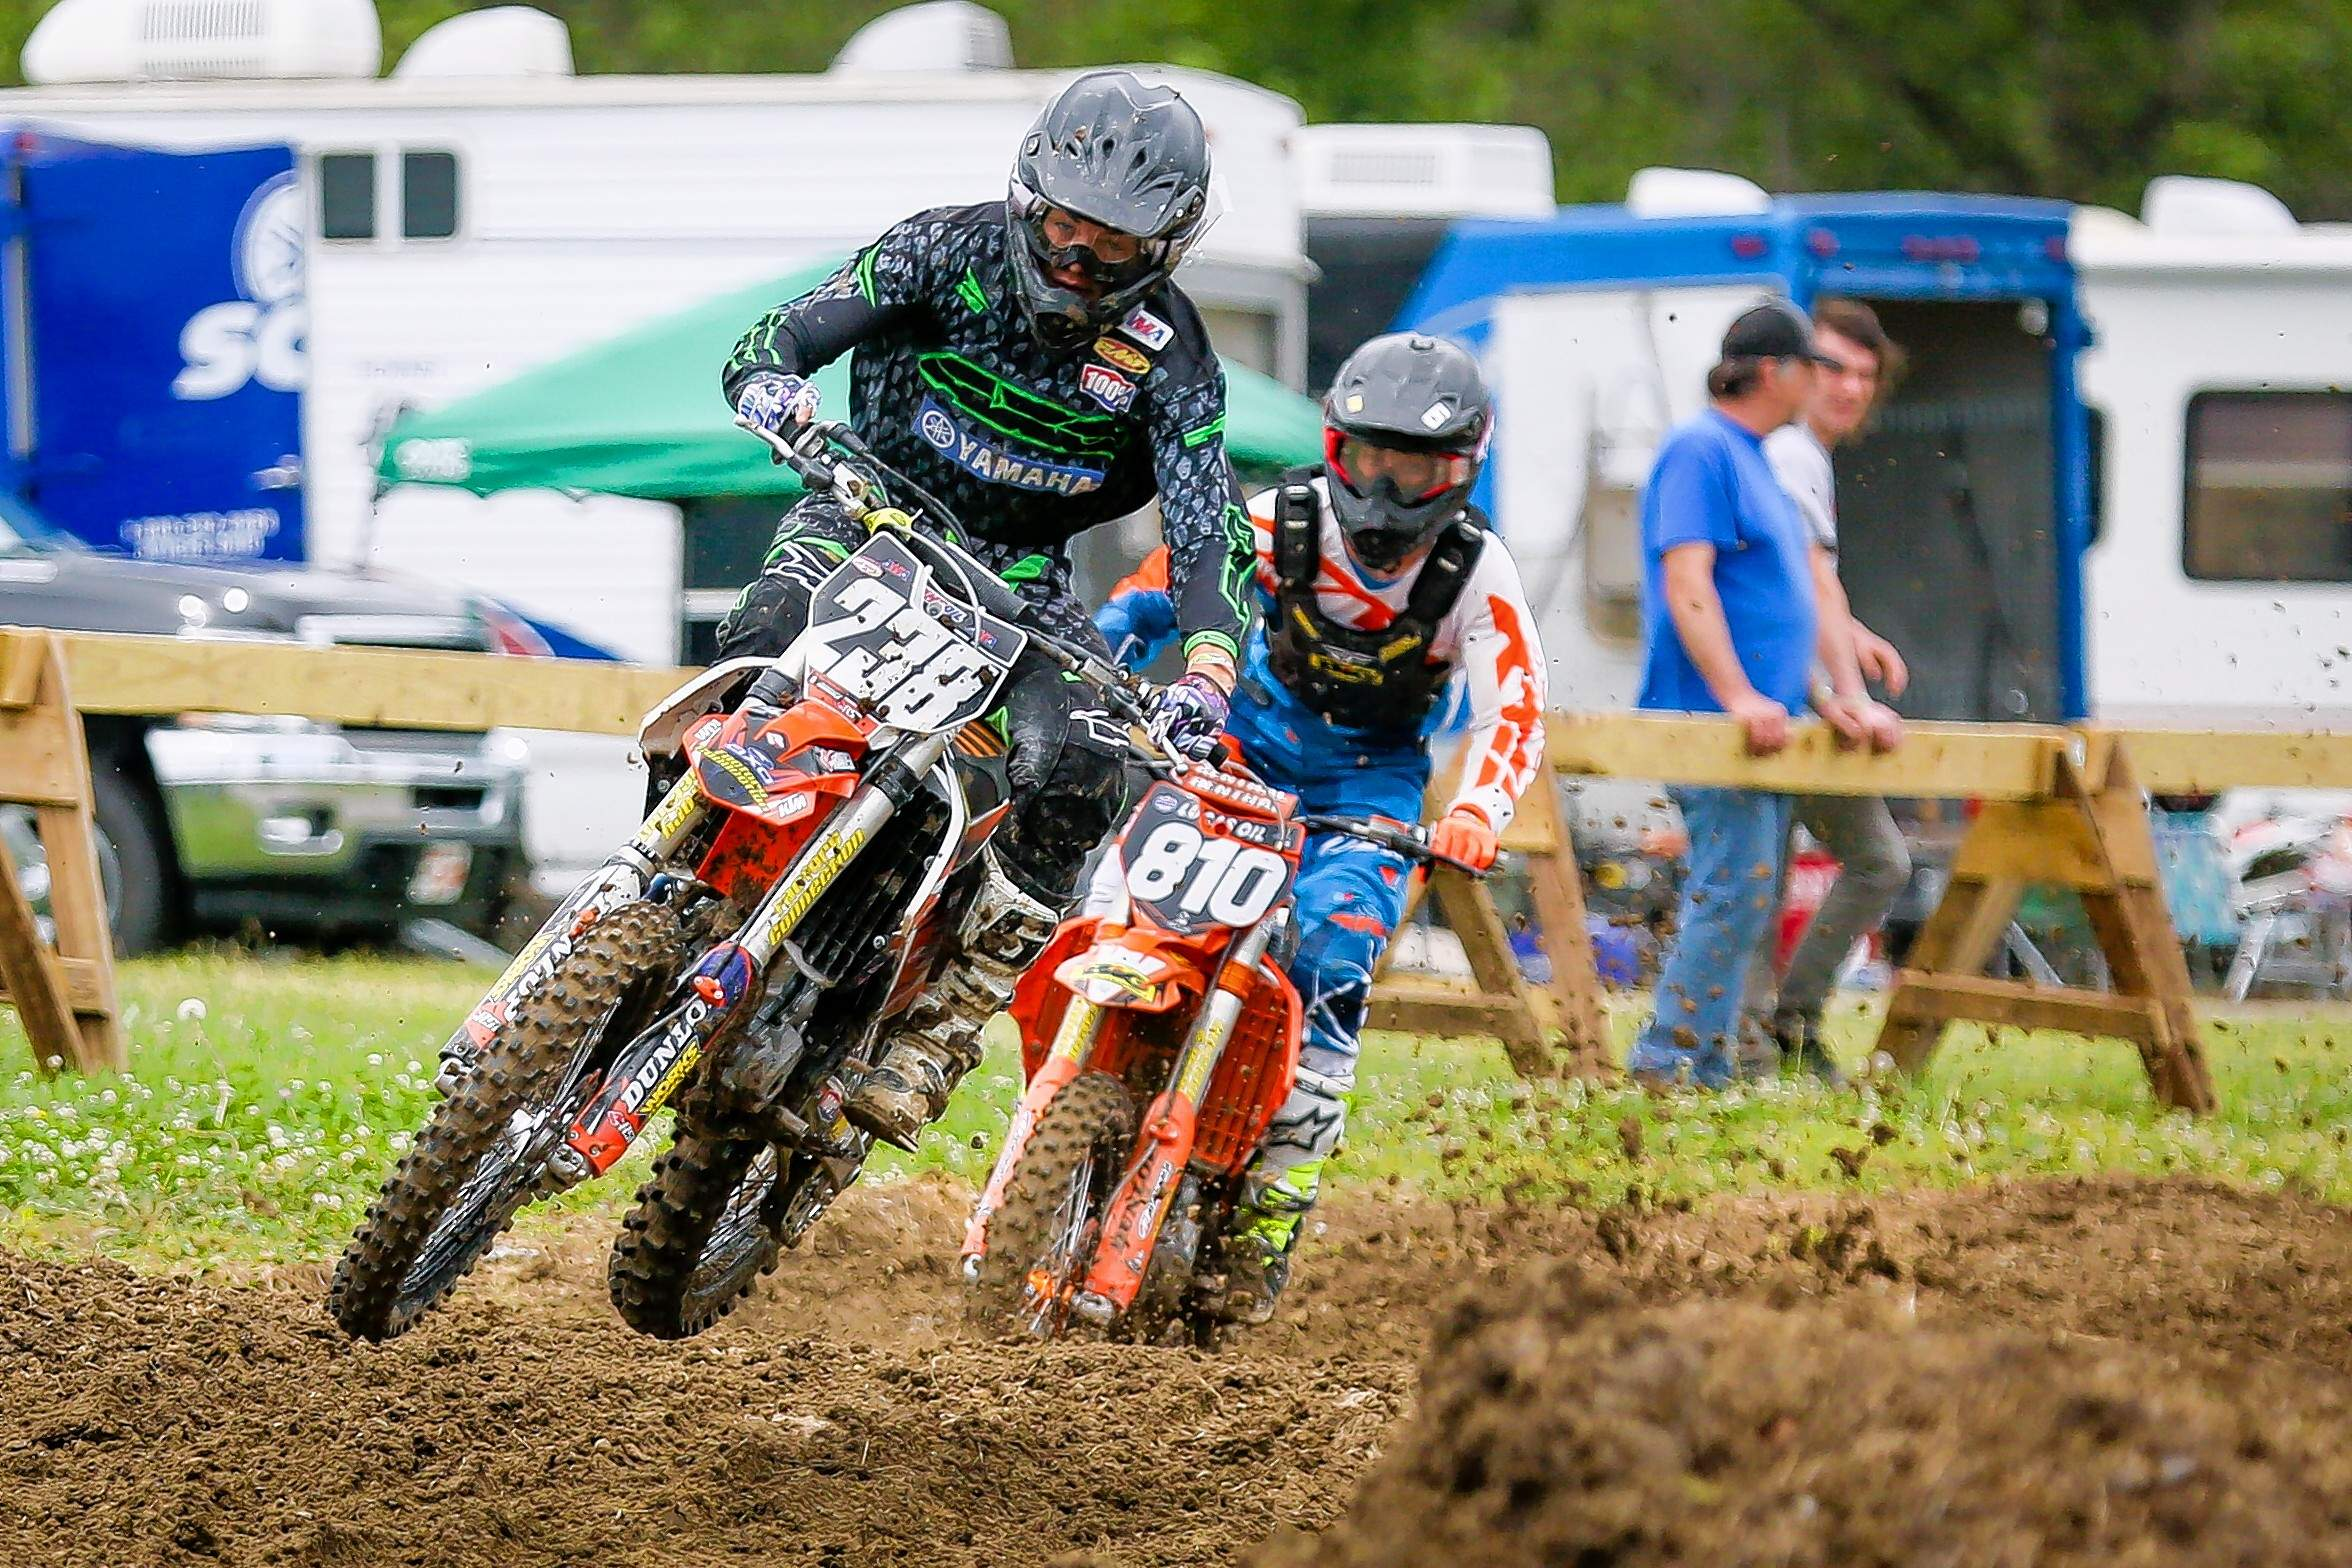 One of last year's highlights was Mason Eck of Collinsville, who in this photo is behind Richard Jackson of Holdenville, Okla., in the 250A, but who later beat out Jackson for first in the Open Pro Sport.